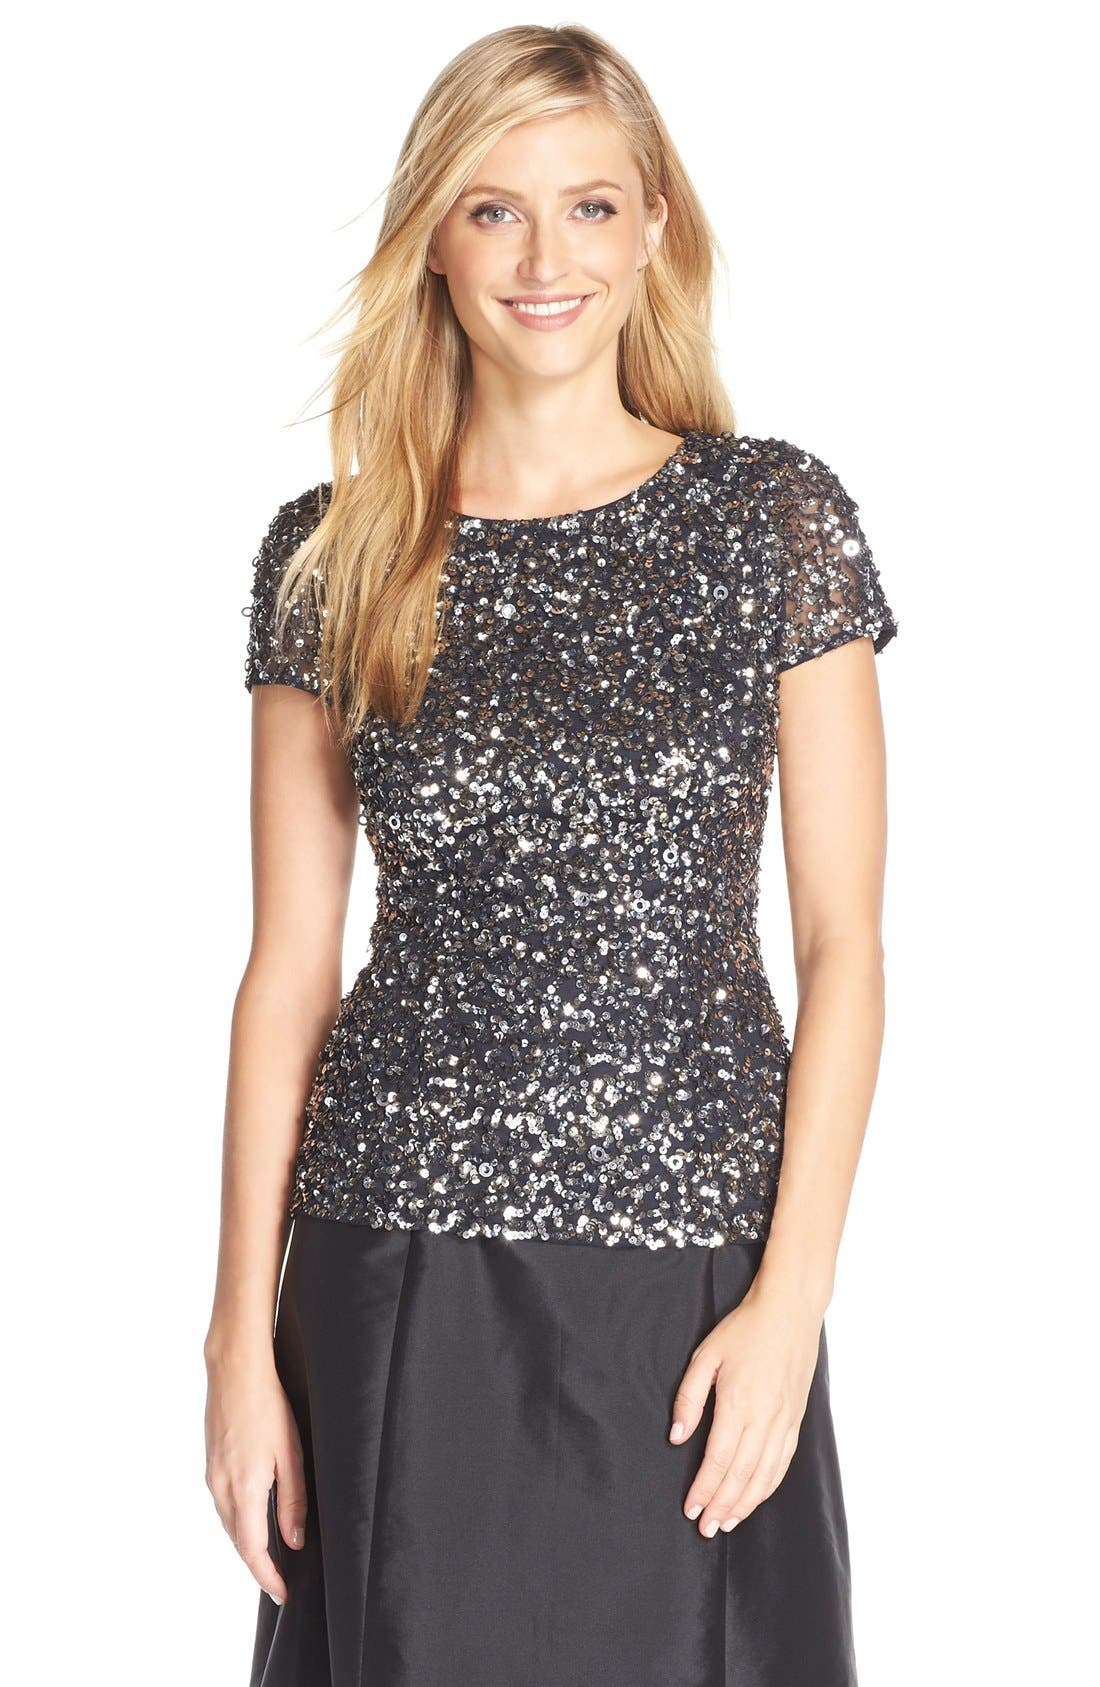 ADRIANNA PAPELL, Sequin Mesh Top, Main thumbnail 1, color, 020